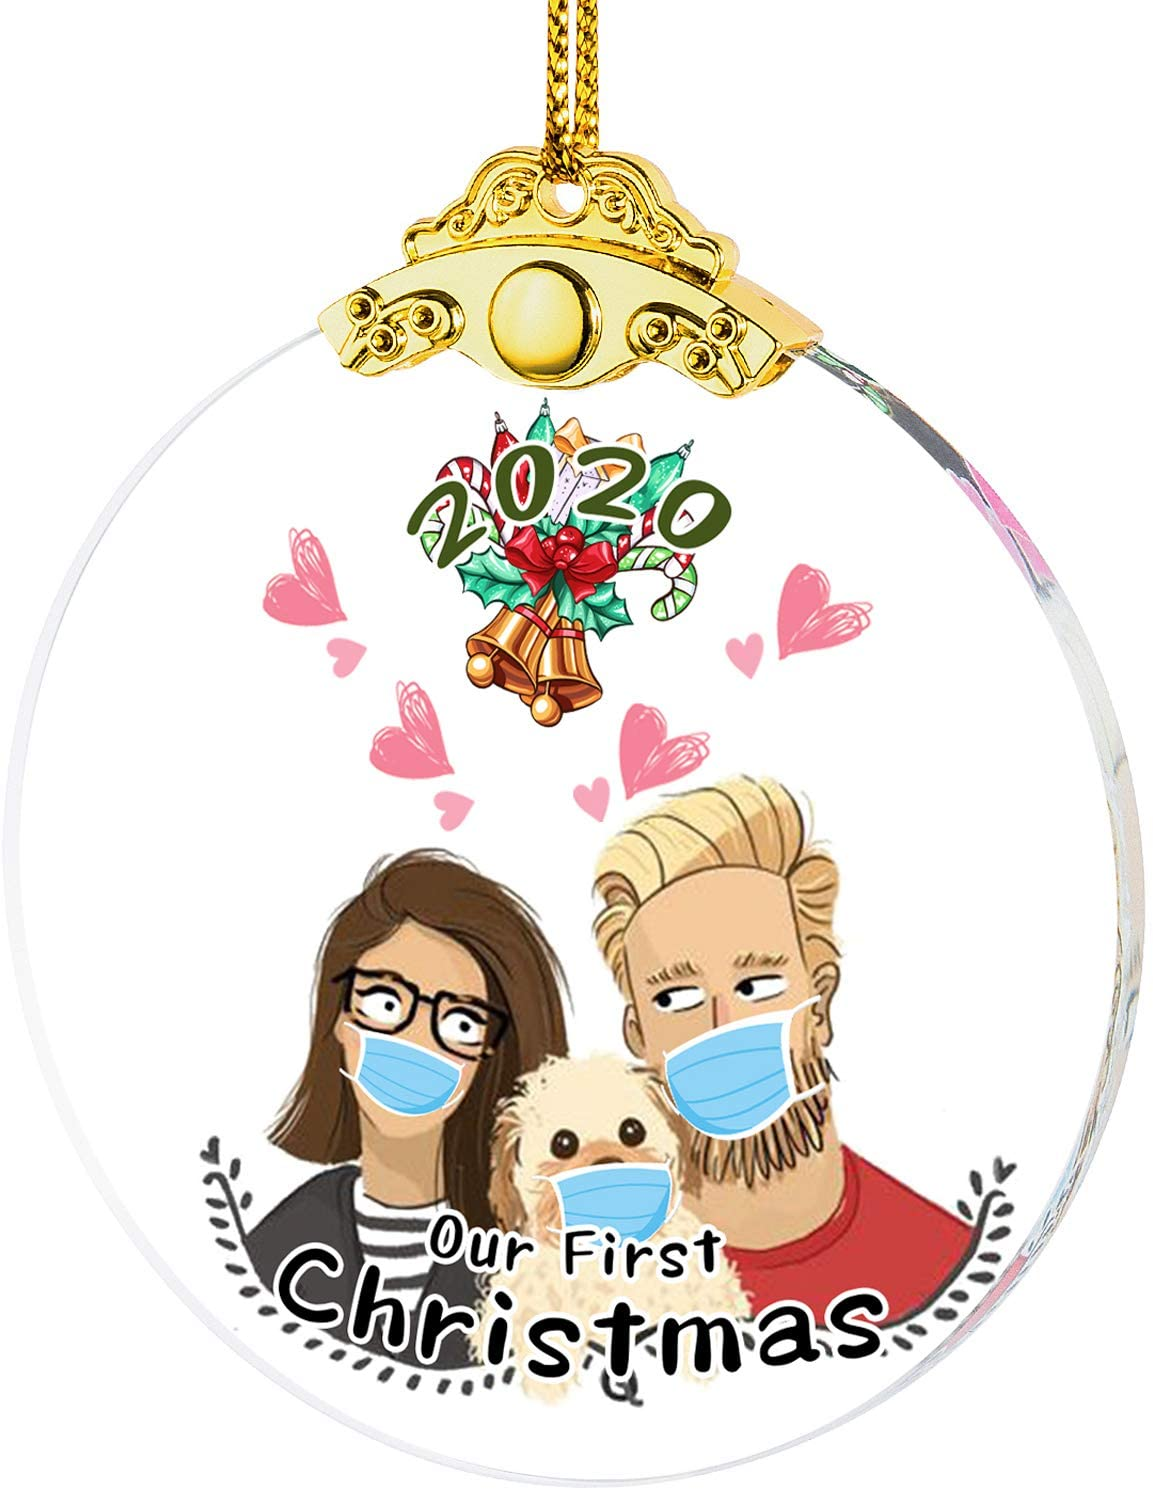 IFOLAINA 2020 Christmas Ornament Our First Quarantine Lovers Gift Tree Hanging Ornaments Newly-Married Couple Present Wedding Ceremony Friends Survive Christmas Pendant Novelty Souvenir